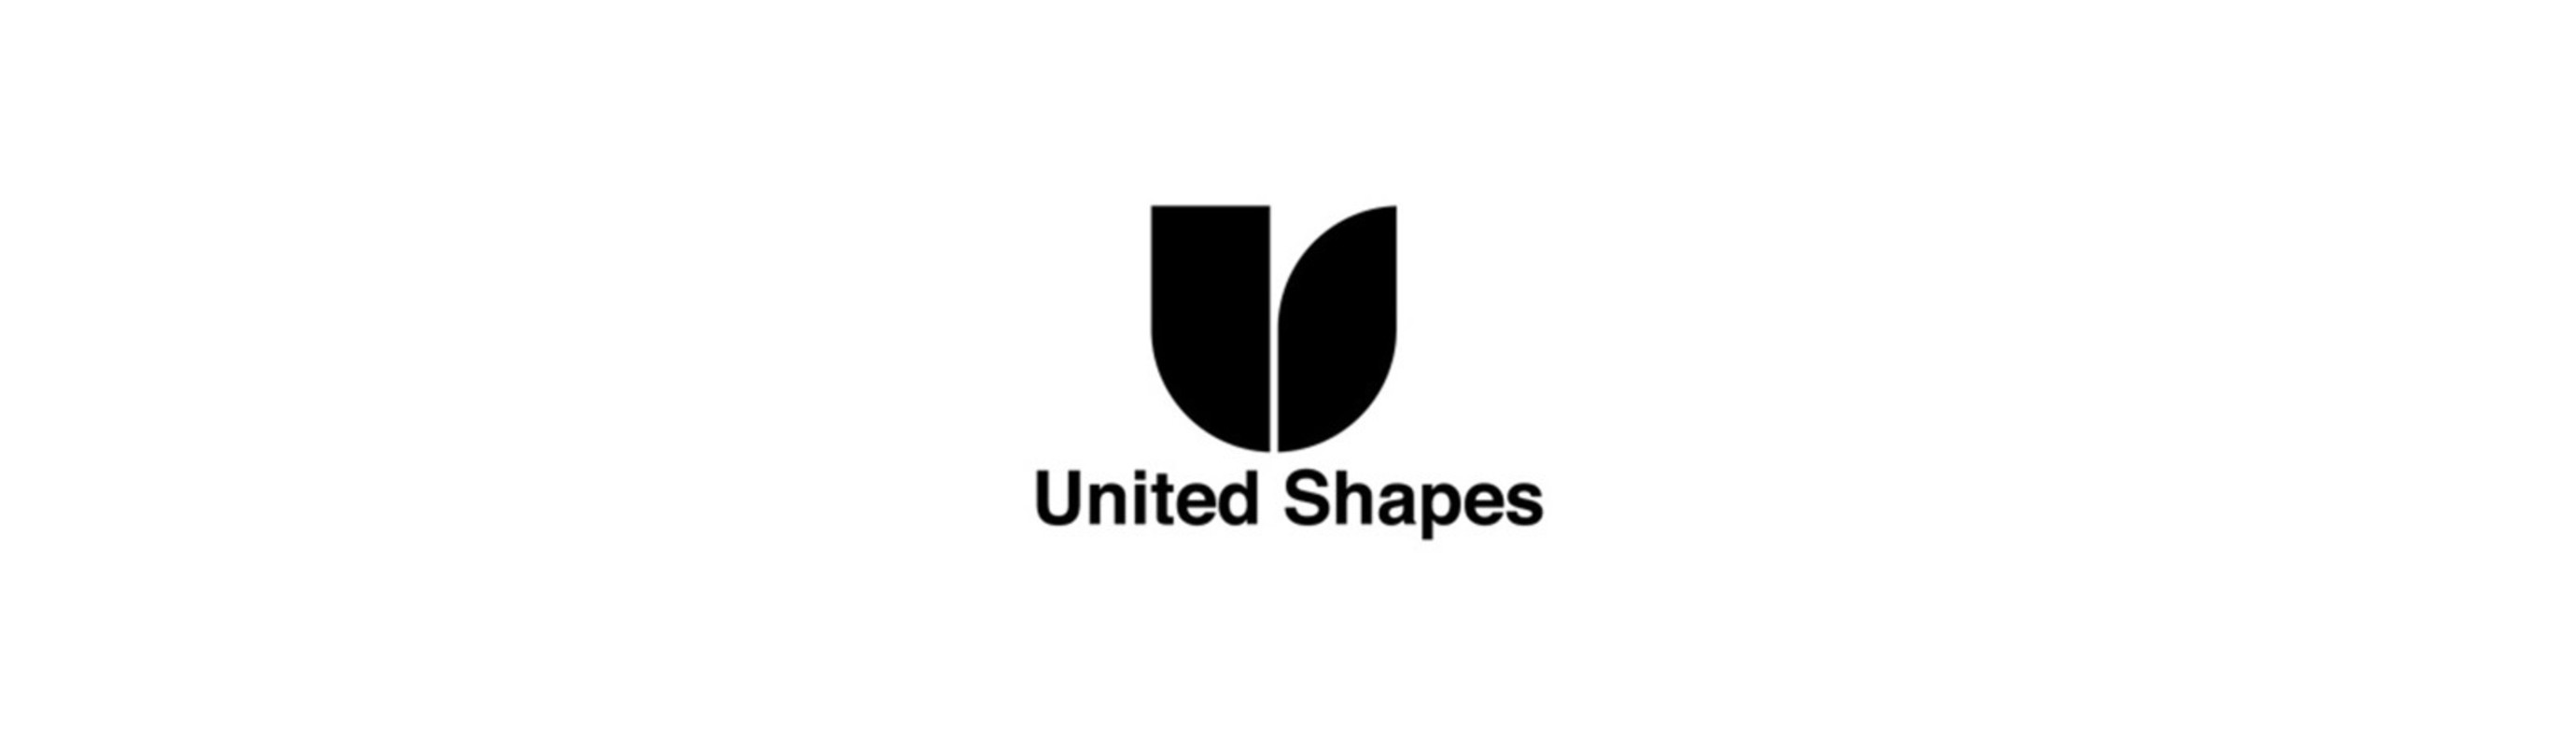 Blog: United Shapes